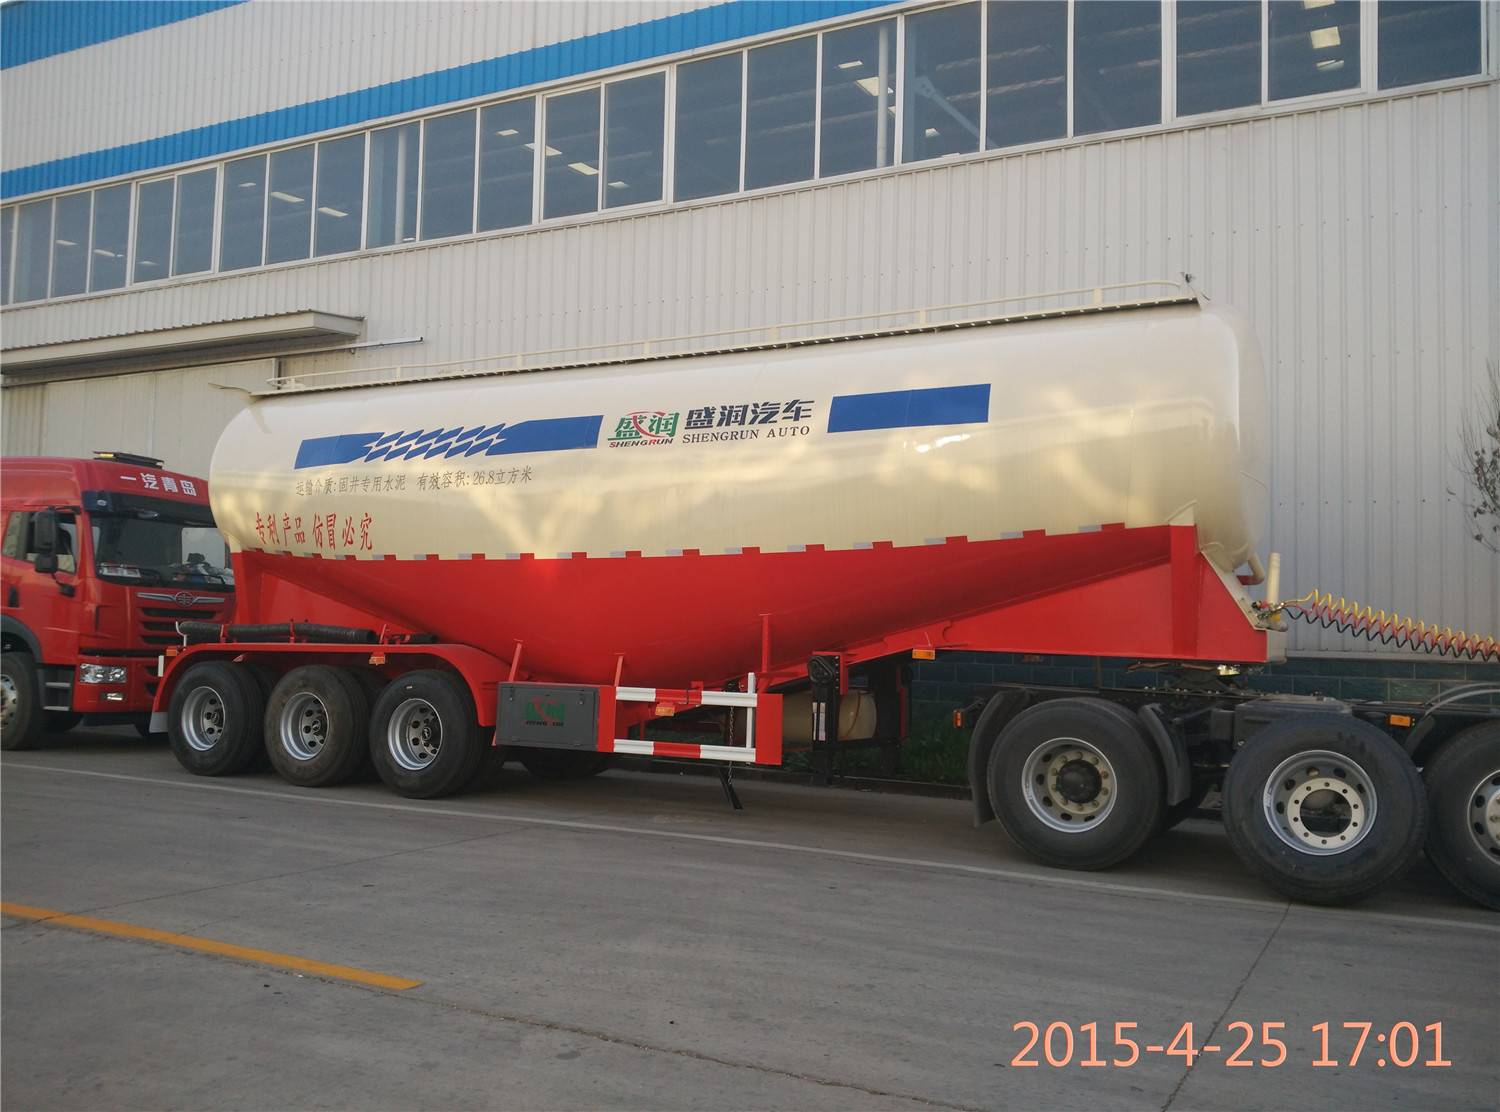 China Supplier Trailer Manufacturer Shengrun Bulk Cement Semi Trailer